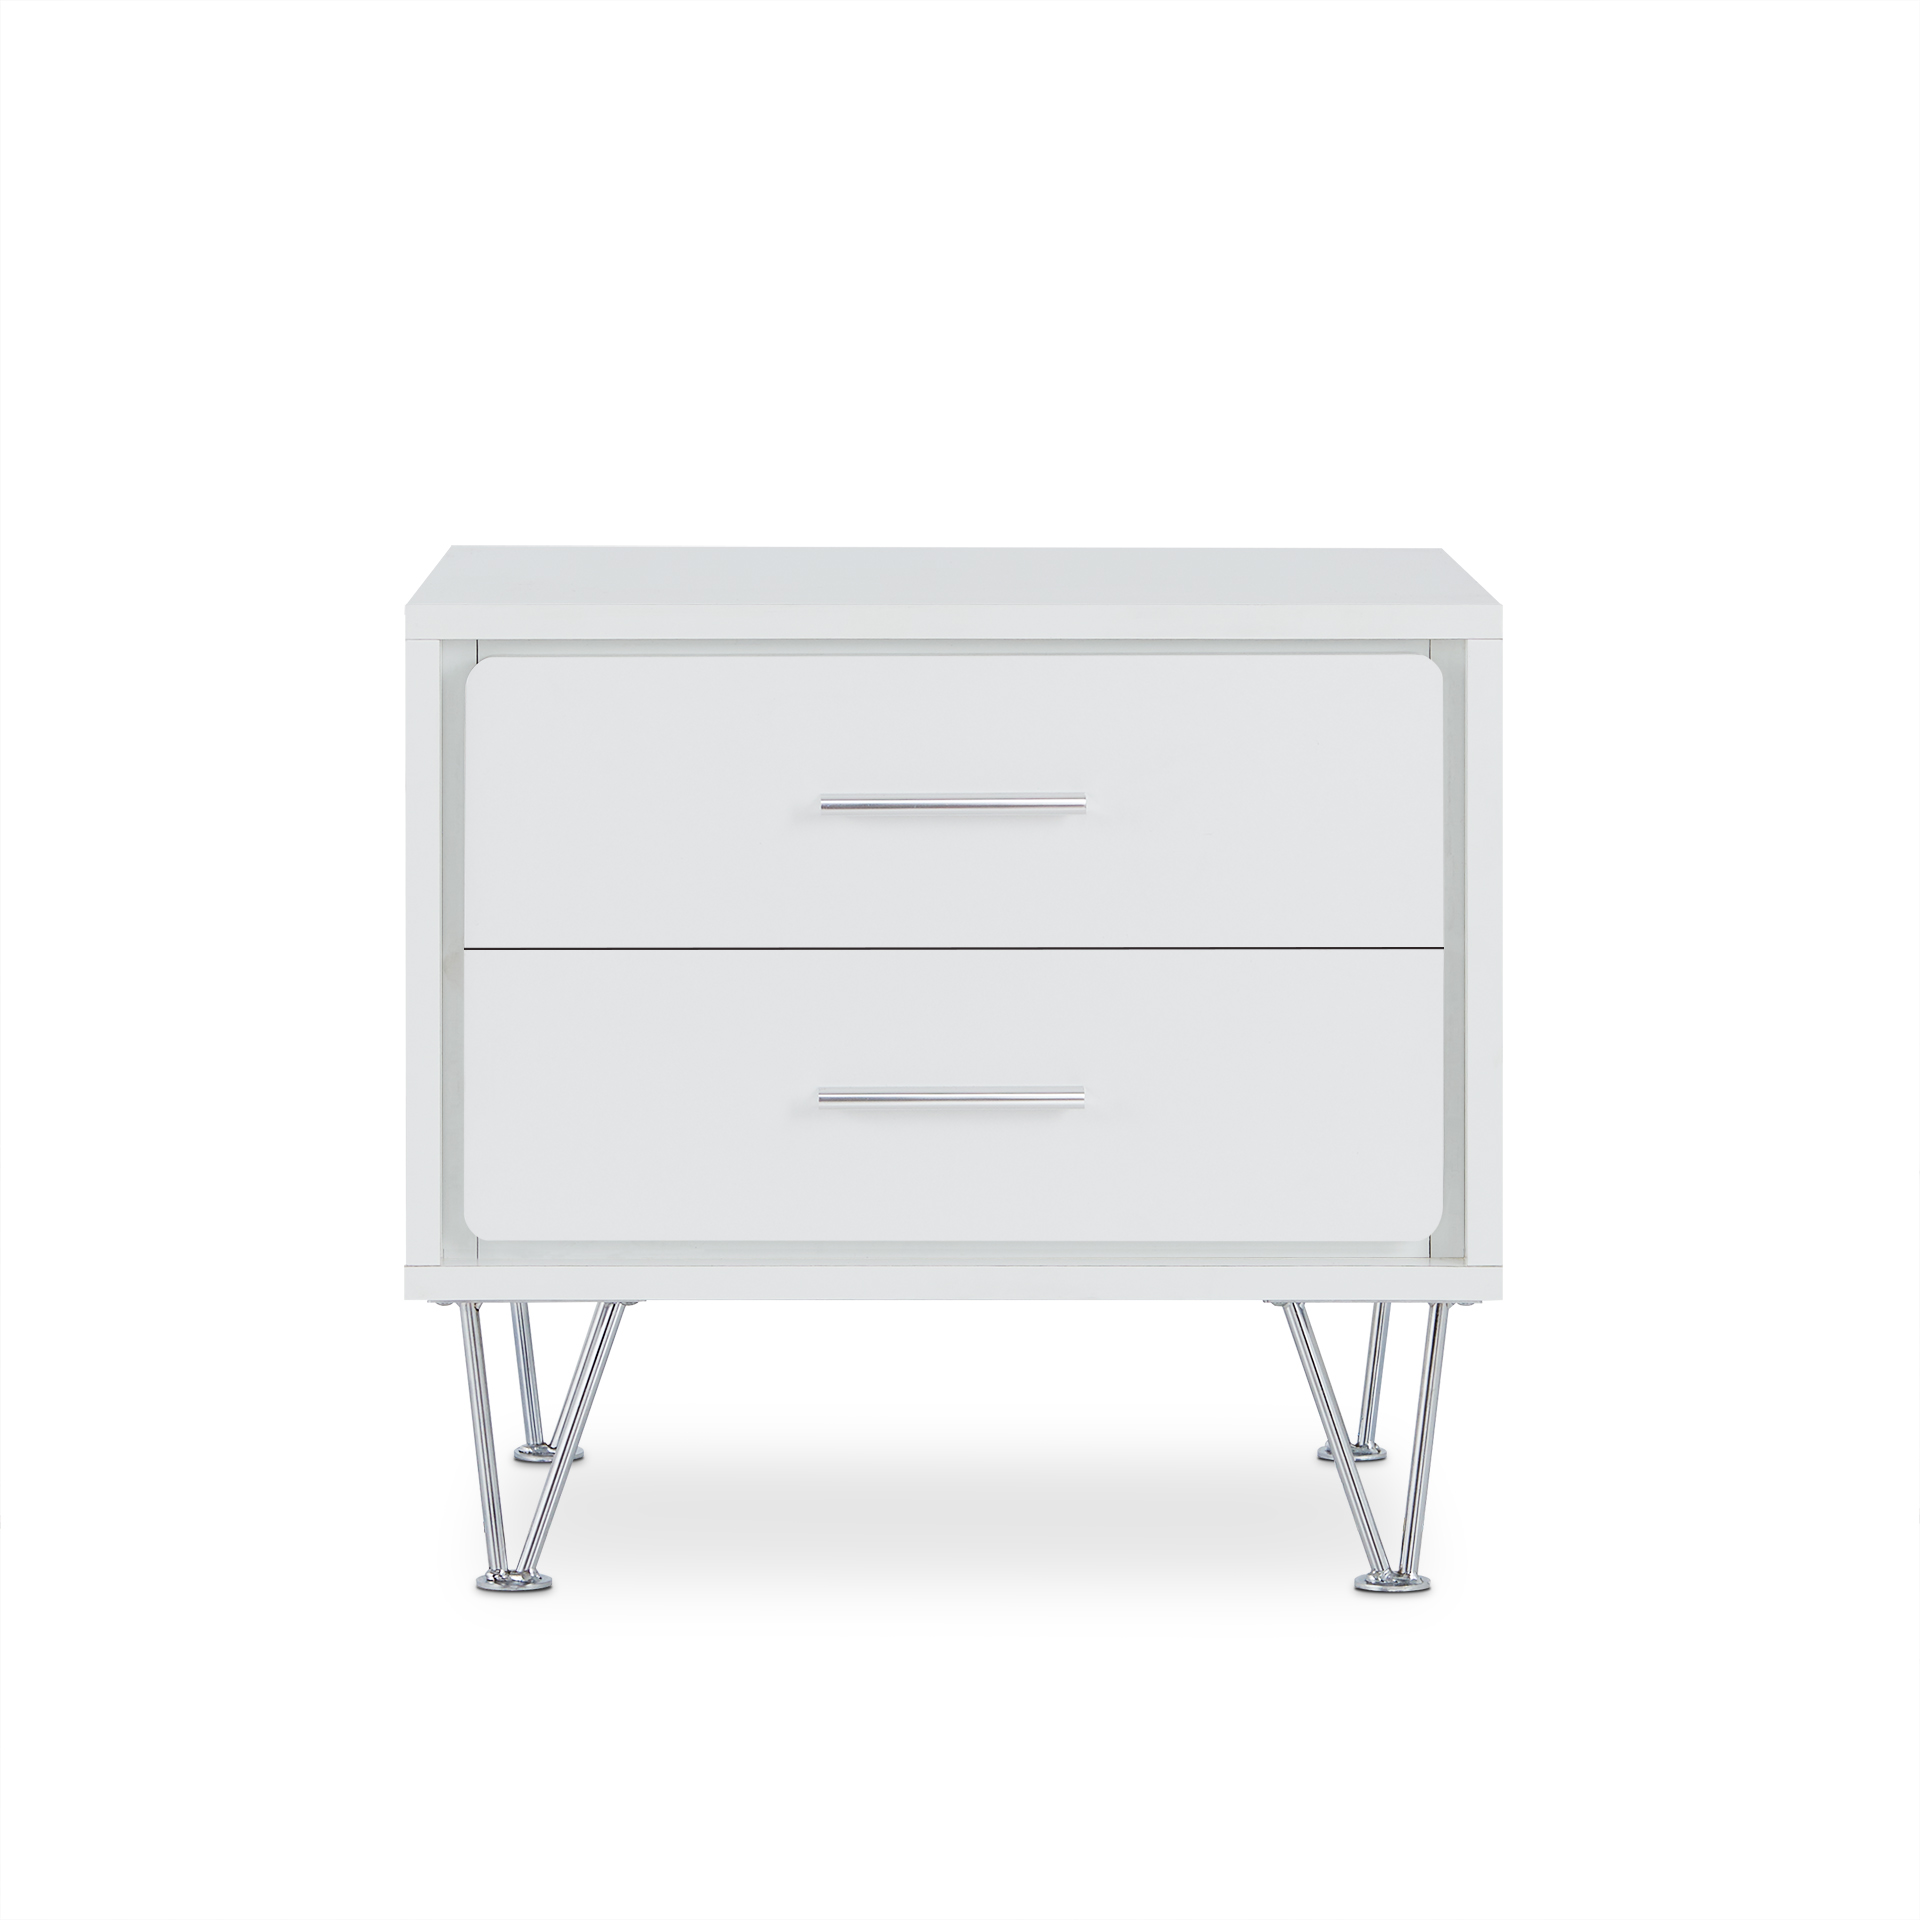 "19.69"" X 15.75"" X 17.93"" White Particle Board Nightstand"